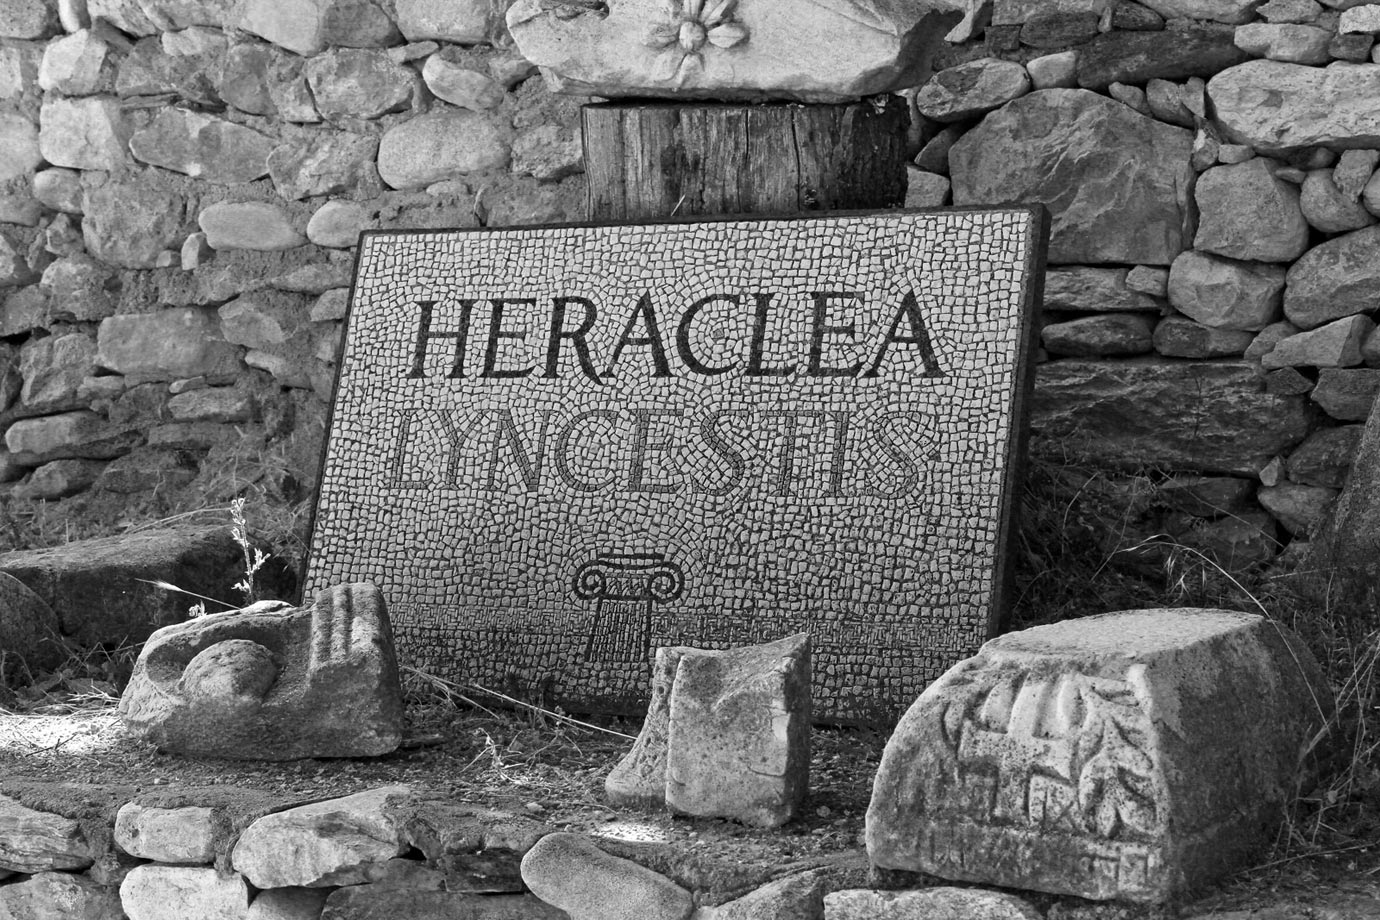 Heraclea Lyncestis is 2km south of Bitola in Macedonia